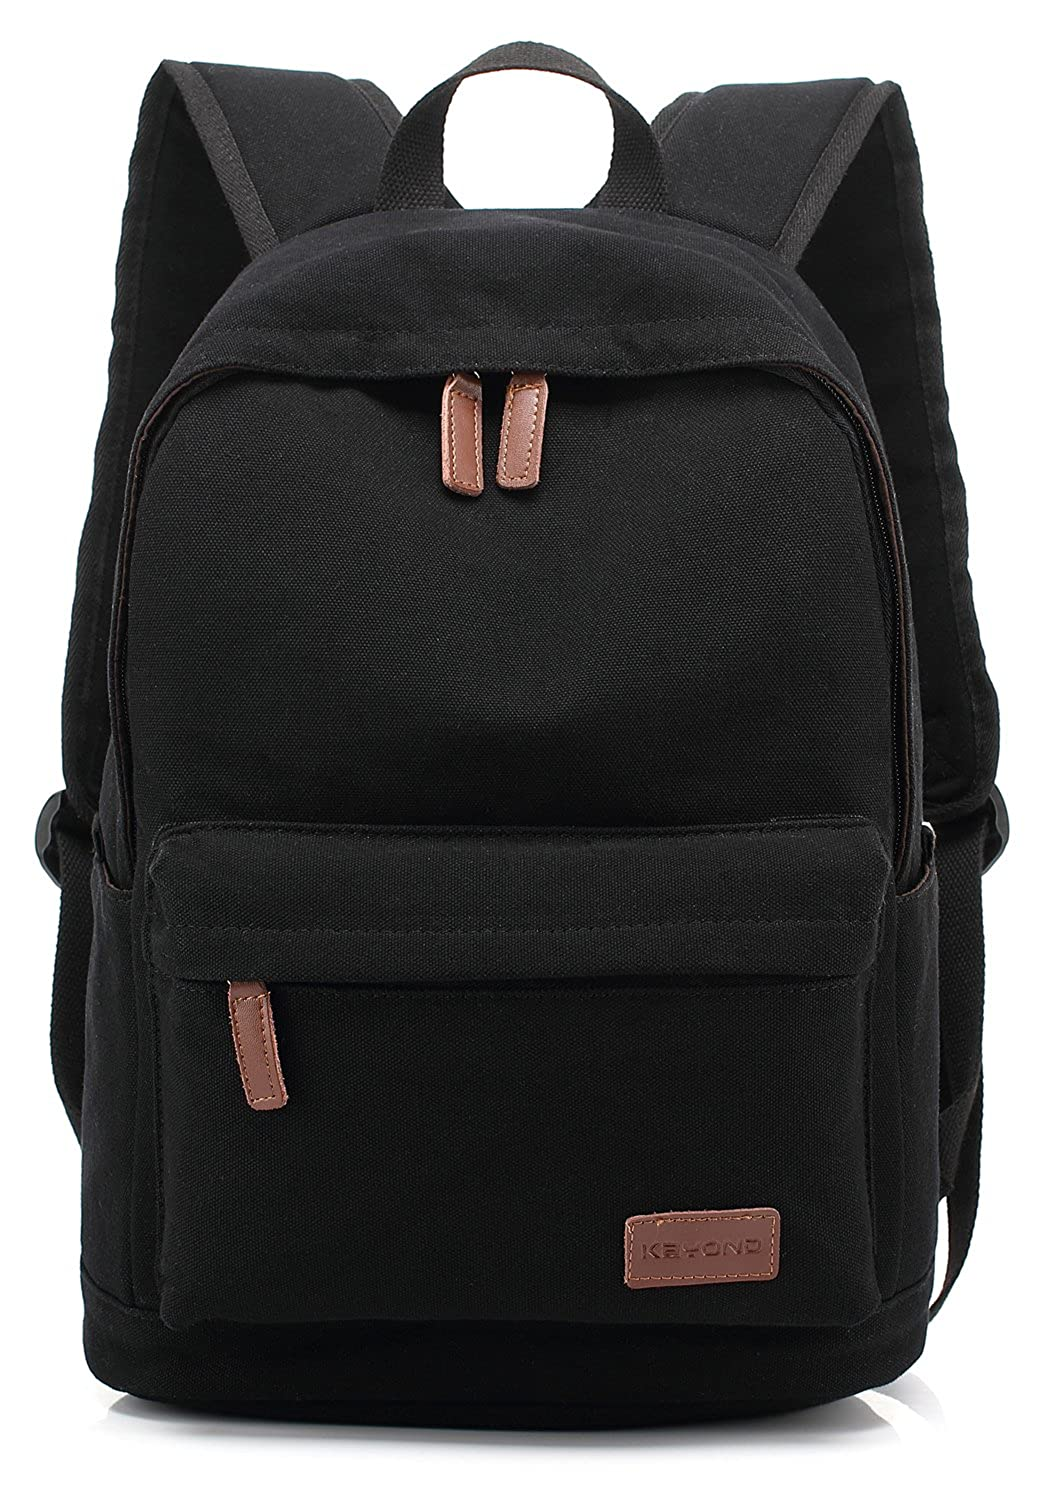 KAYOND Casual Style Lightweight canvas Laptop Bag Cute backpacks School Backpack